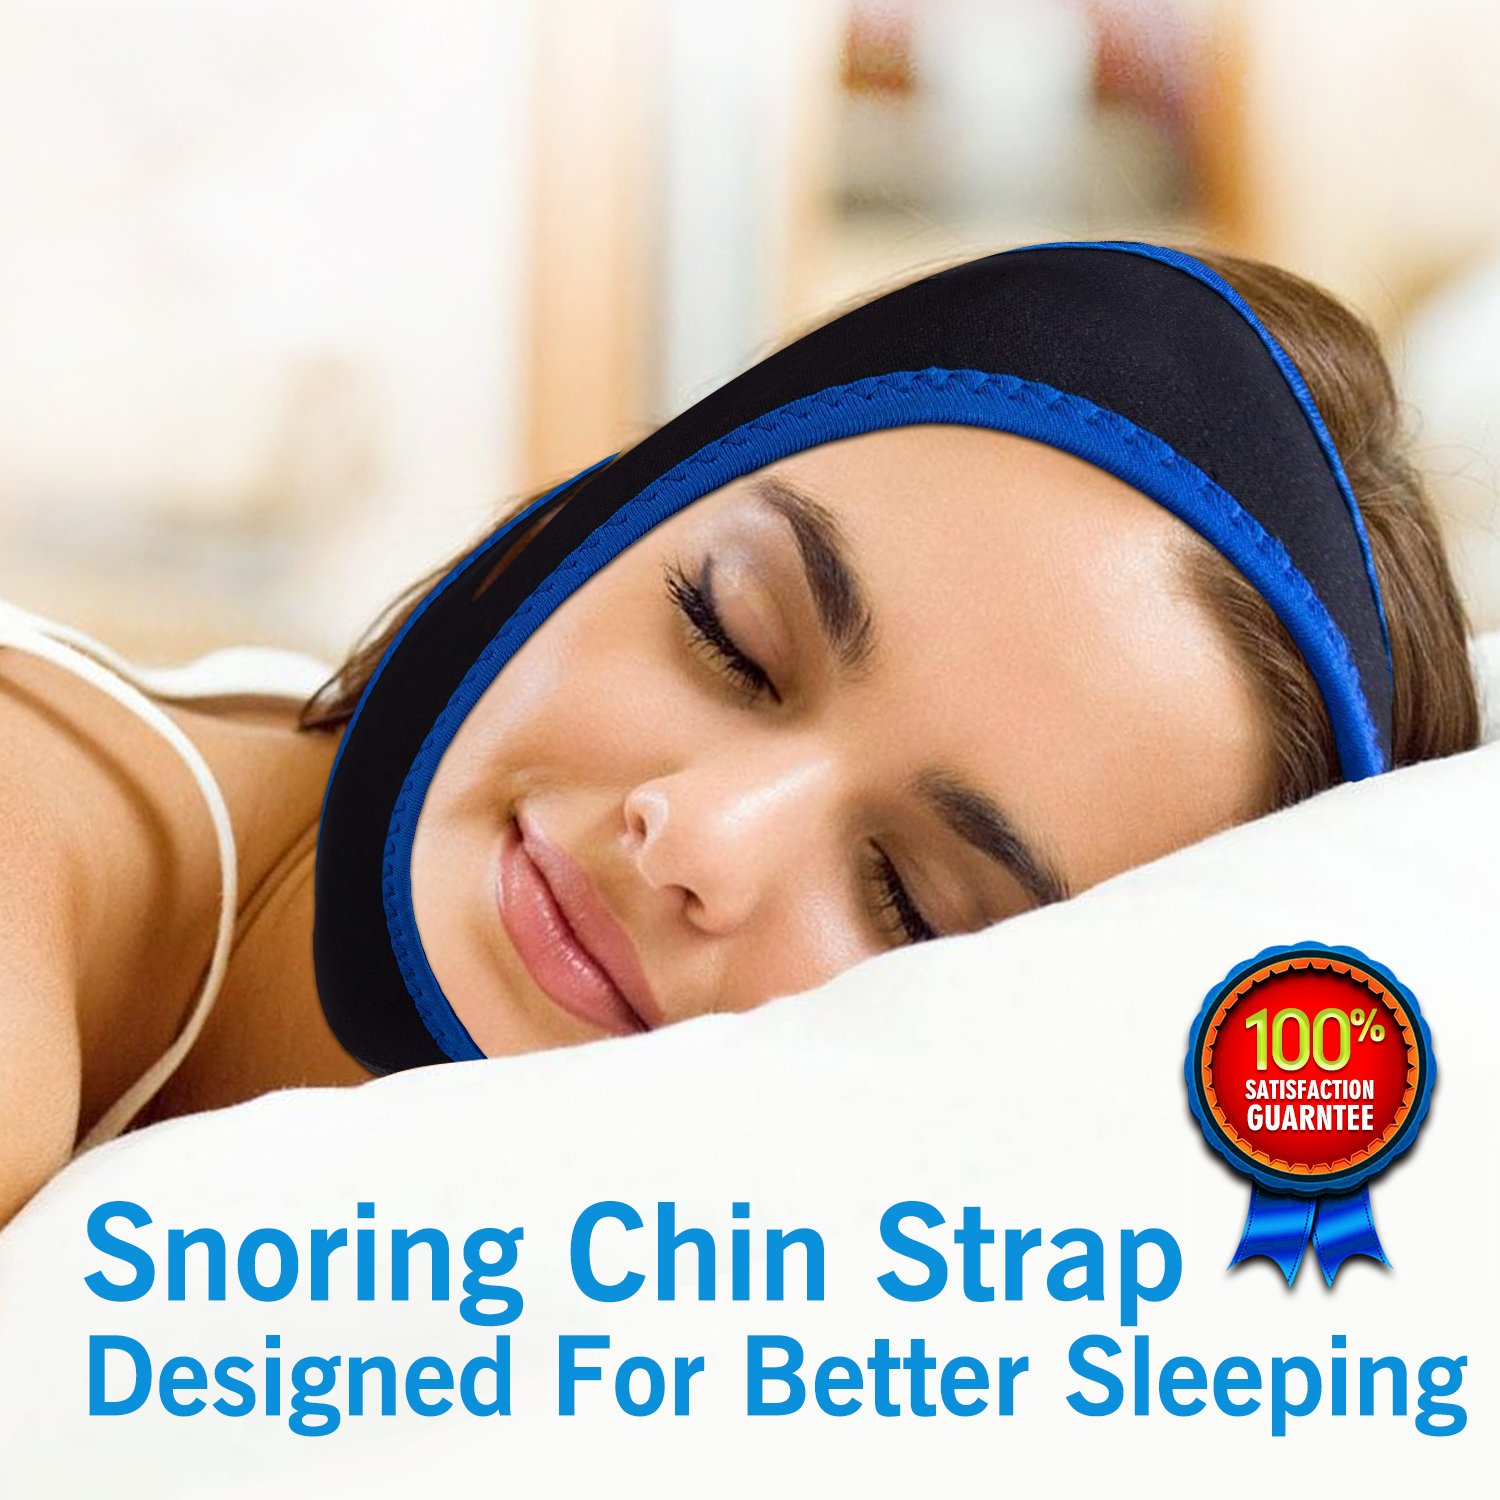 Anti Snoring Solution Chin Strap - Adjustable Snore Stopper,Anti Snoring Devices to Stop Snoring - Natural & Comfortable Sleep Aid for Women & Men - Designed as Snoring Remedies (Black) by AIHHIA